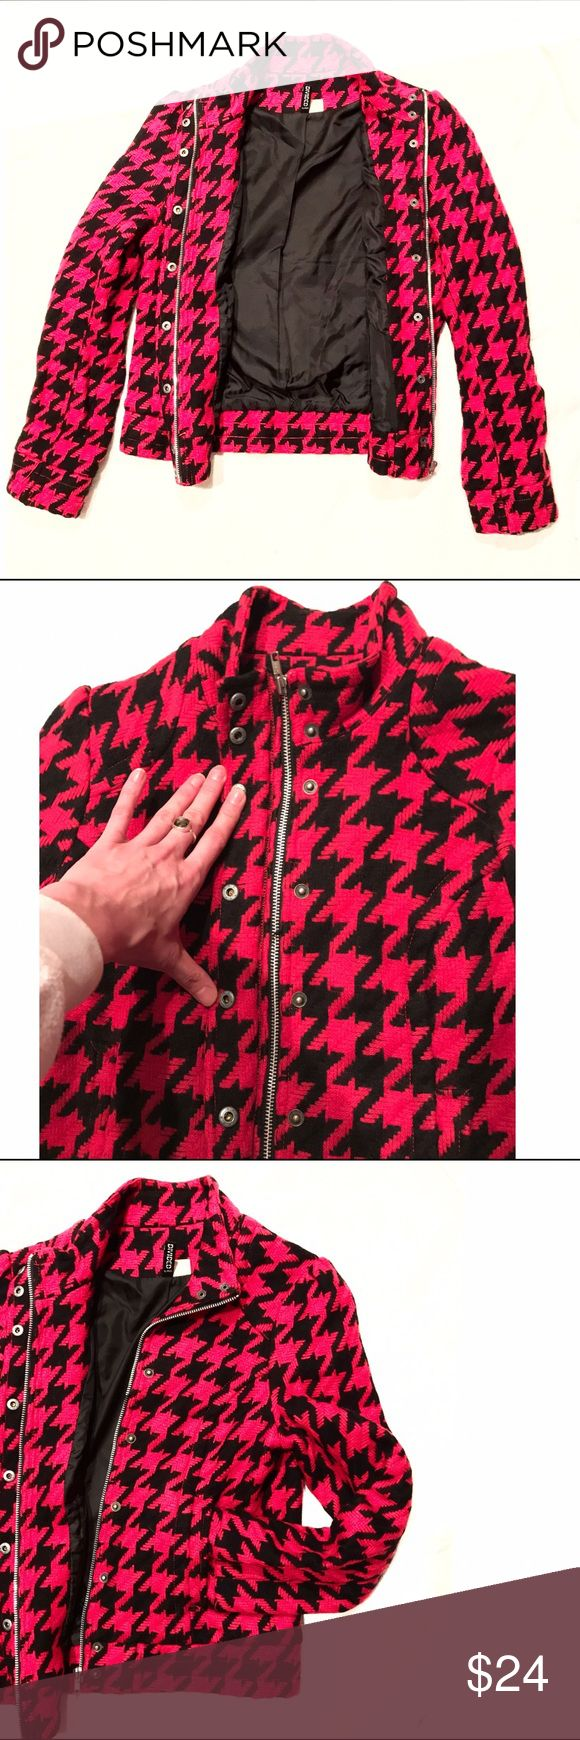 H&M Red and Black Houndstooth Jacket Sz. Med H&M Red and Black Houndstooth Jacket Sz. Med. Fun jacket, great condition. Warm too :) H&M Jackets & Coats